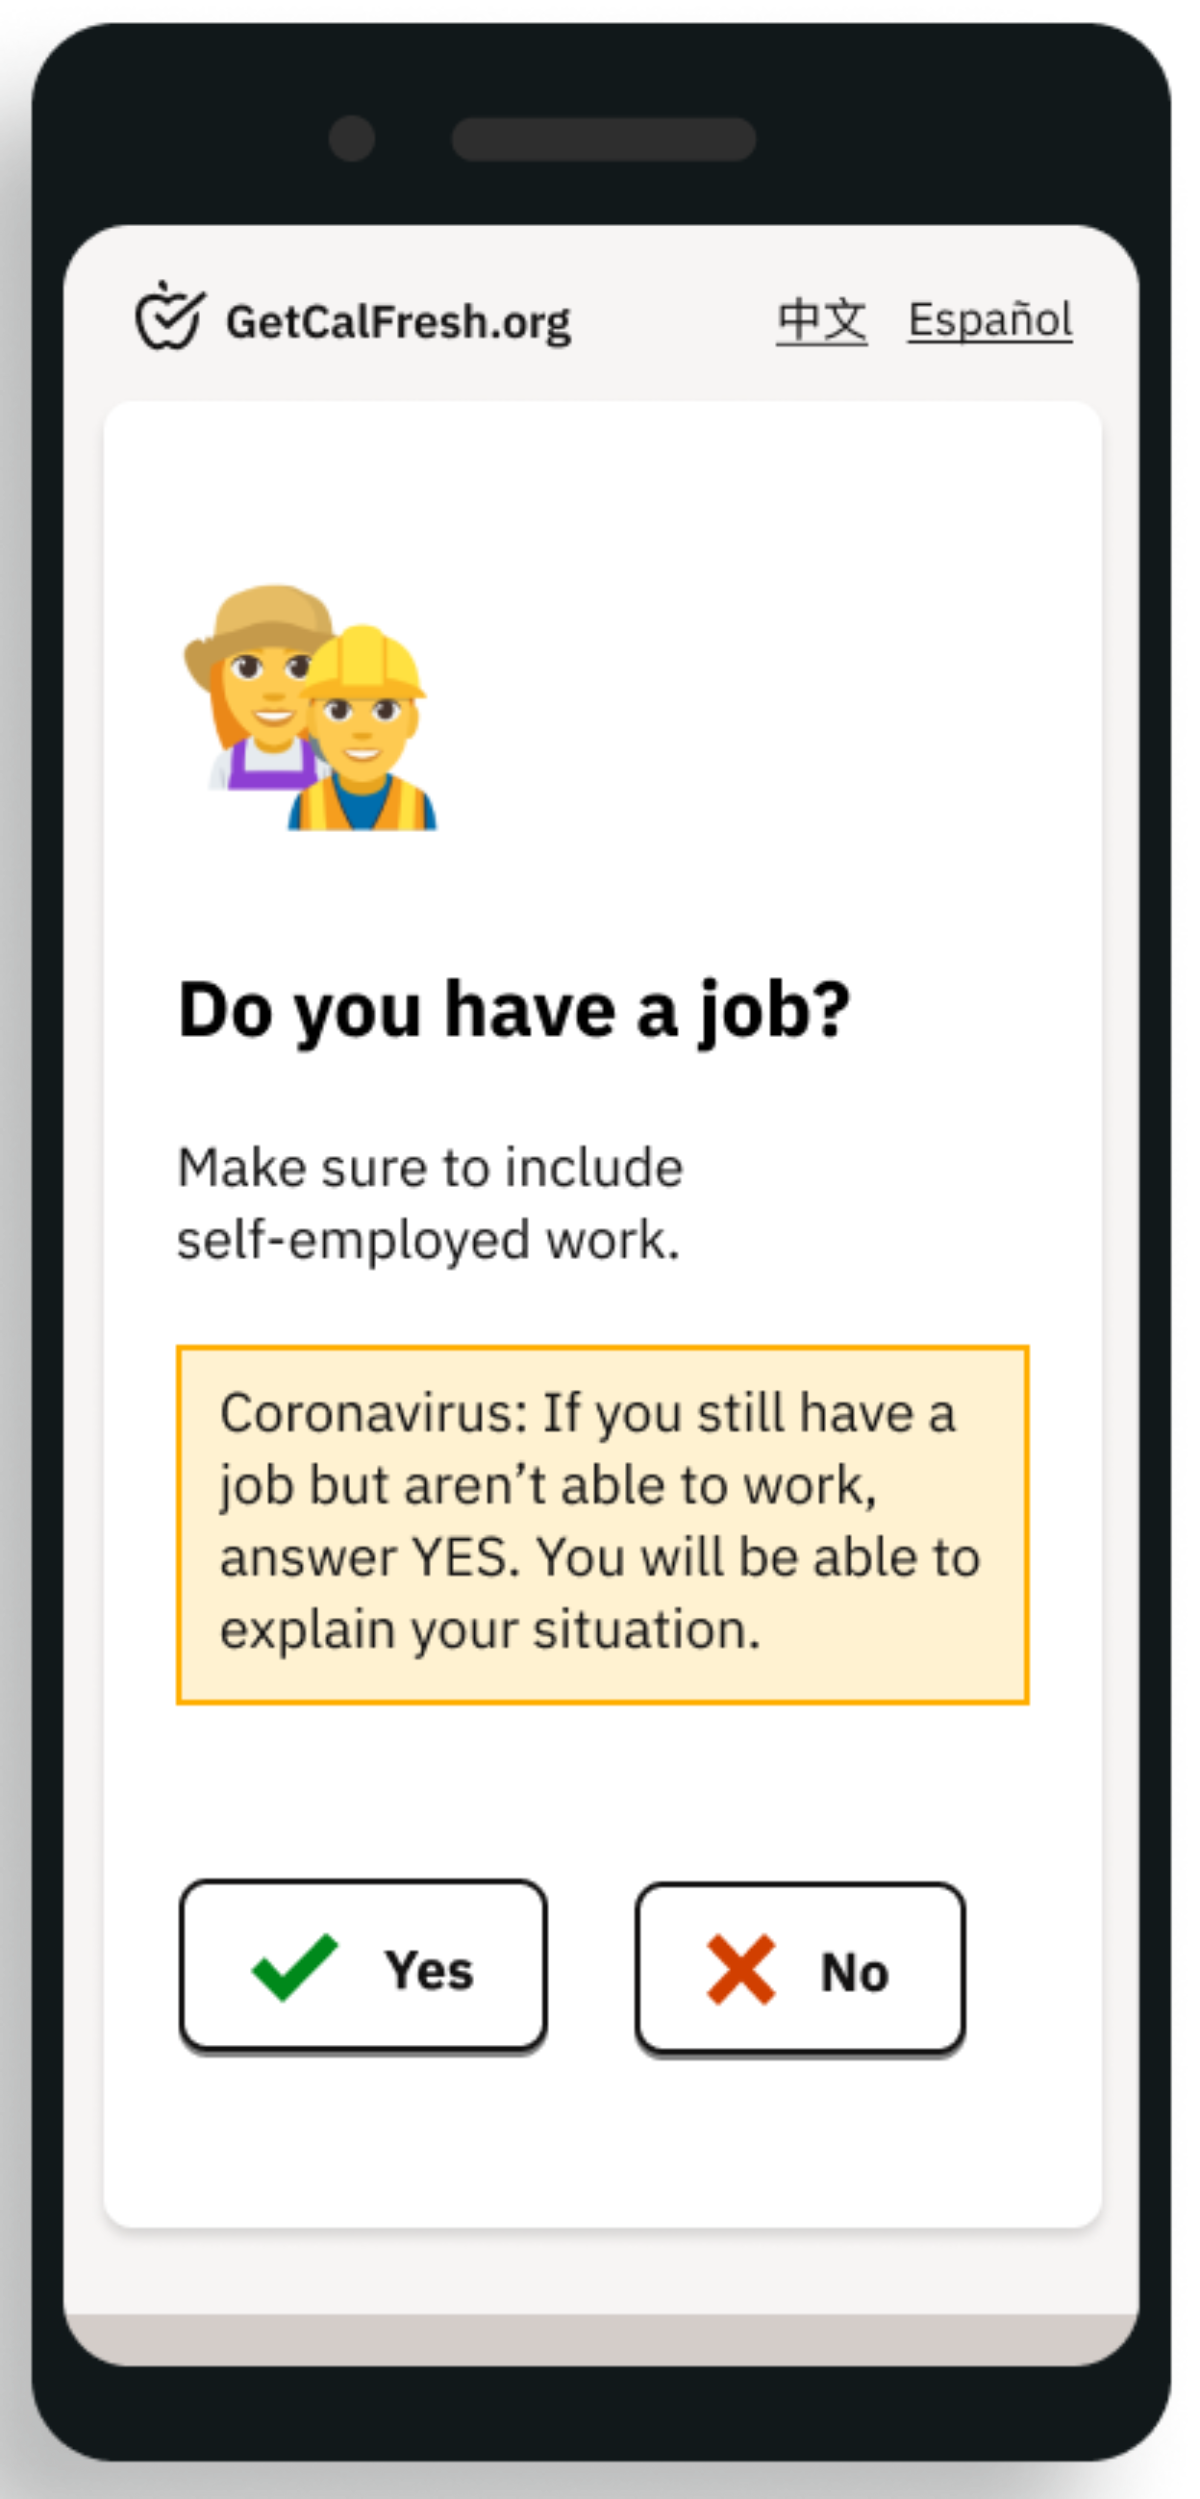 Screenshot on a smartphone asking if applicant has a job, with a COVID-19 notice.